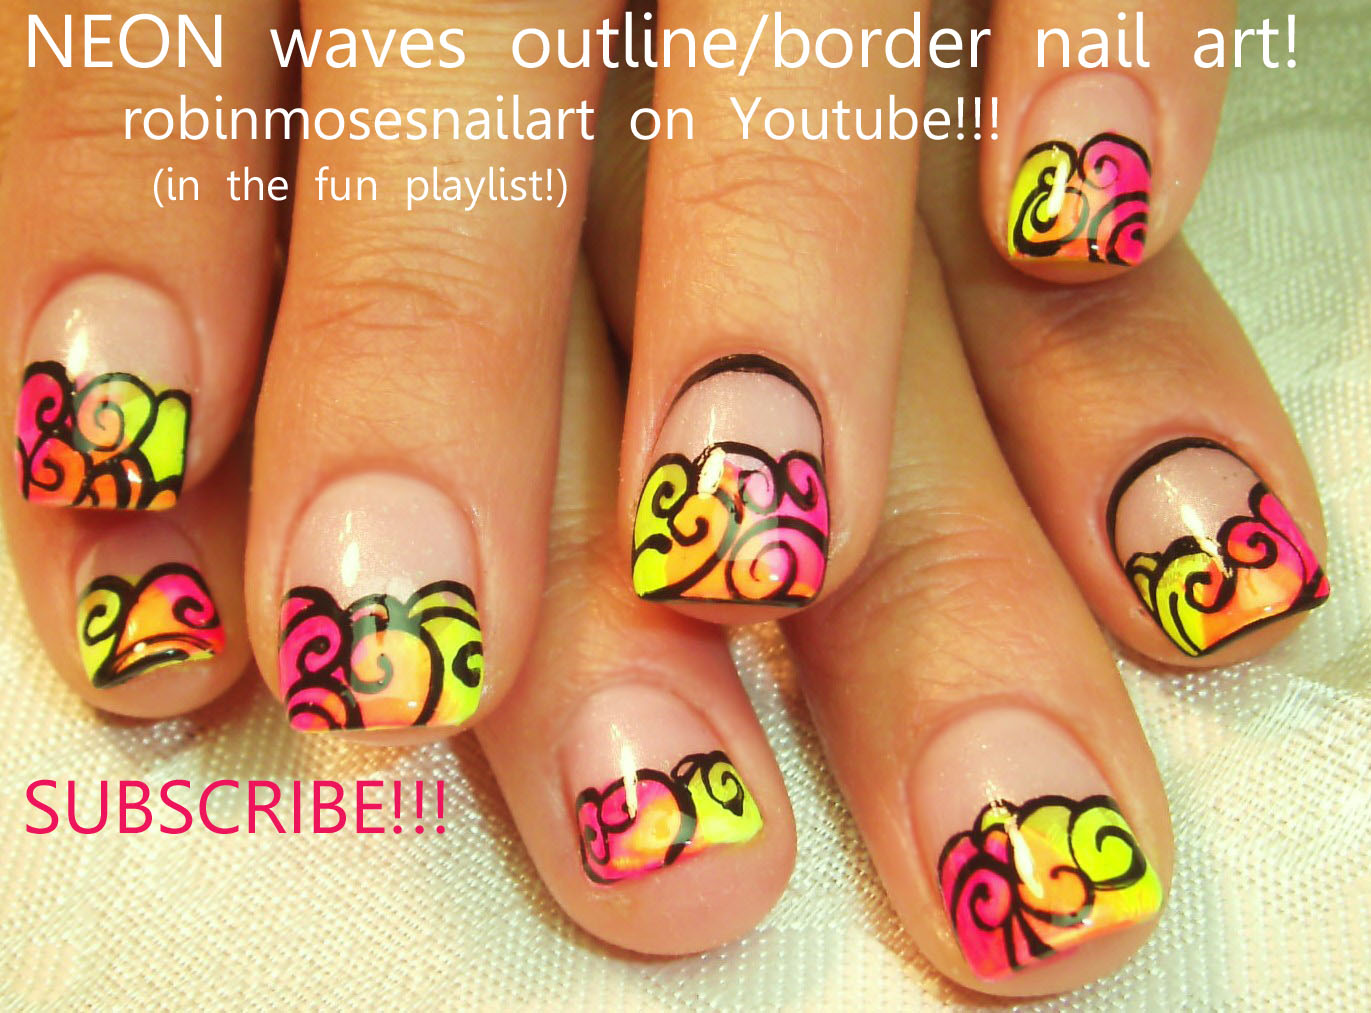 Neon Nails Pink Outline Border Nail Orange Yellow Swirls Midnight Blue Art With